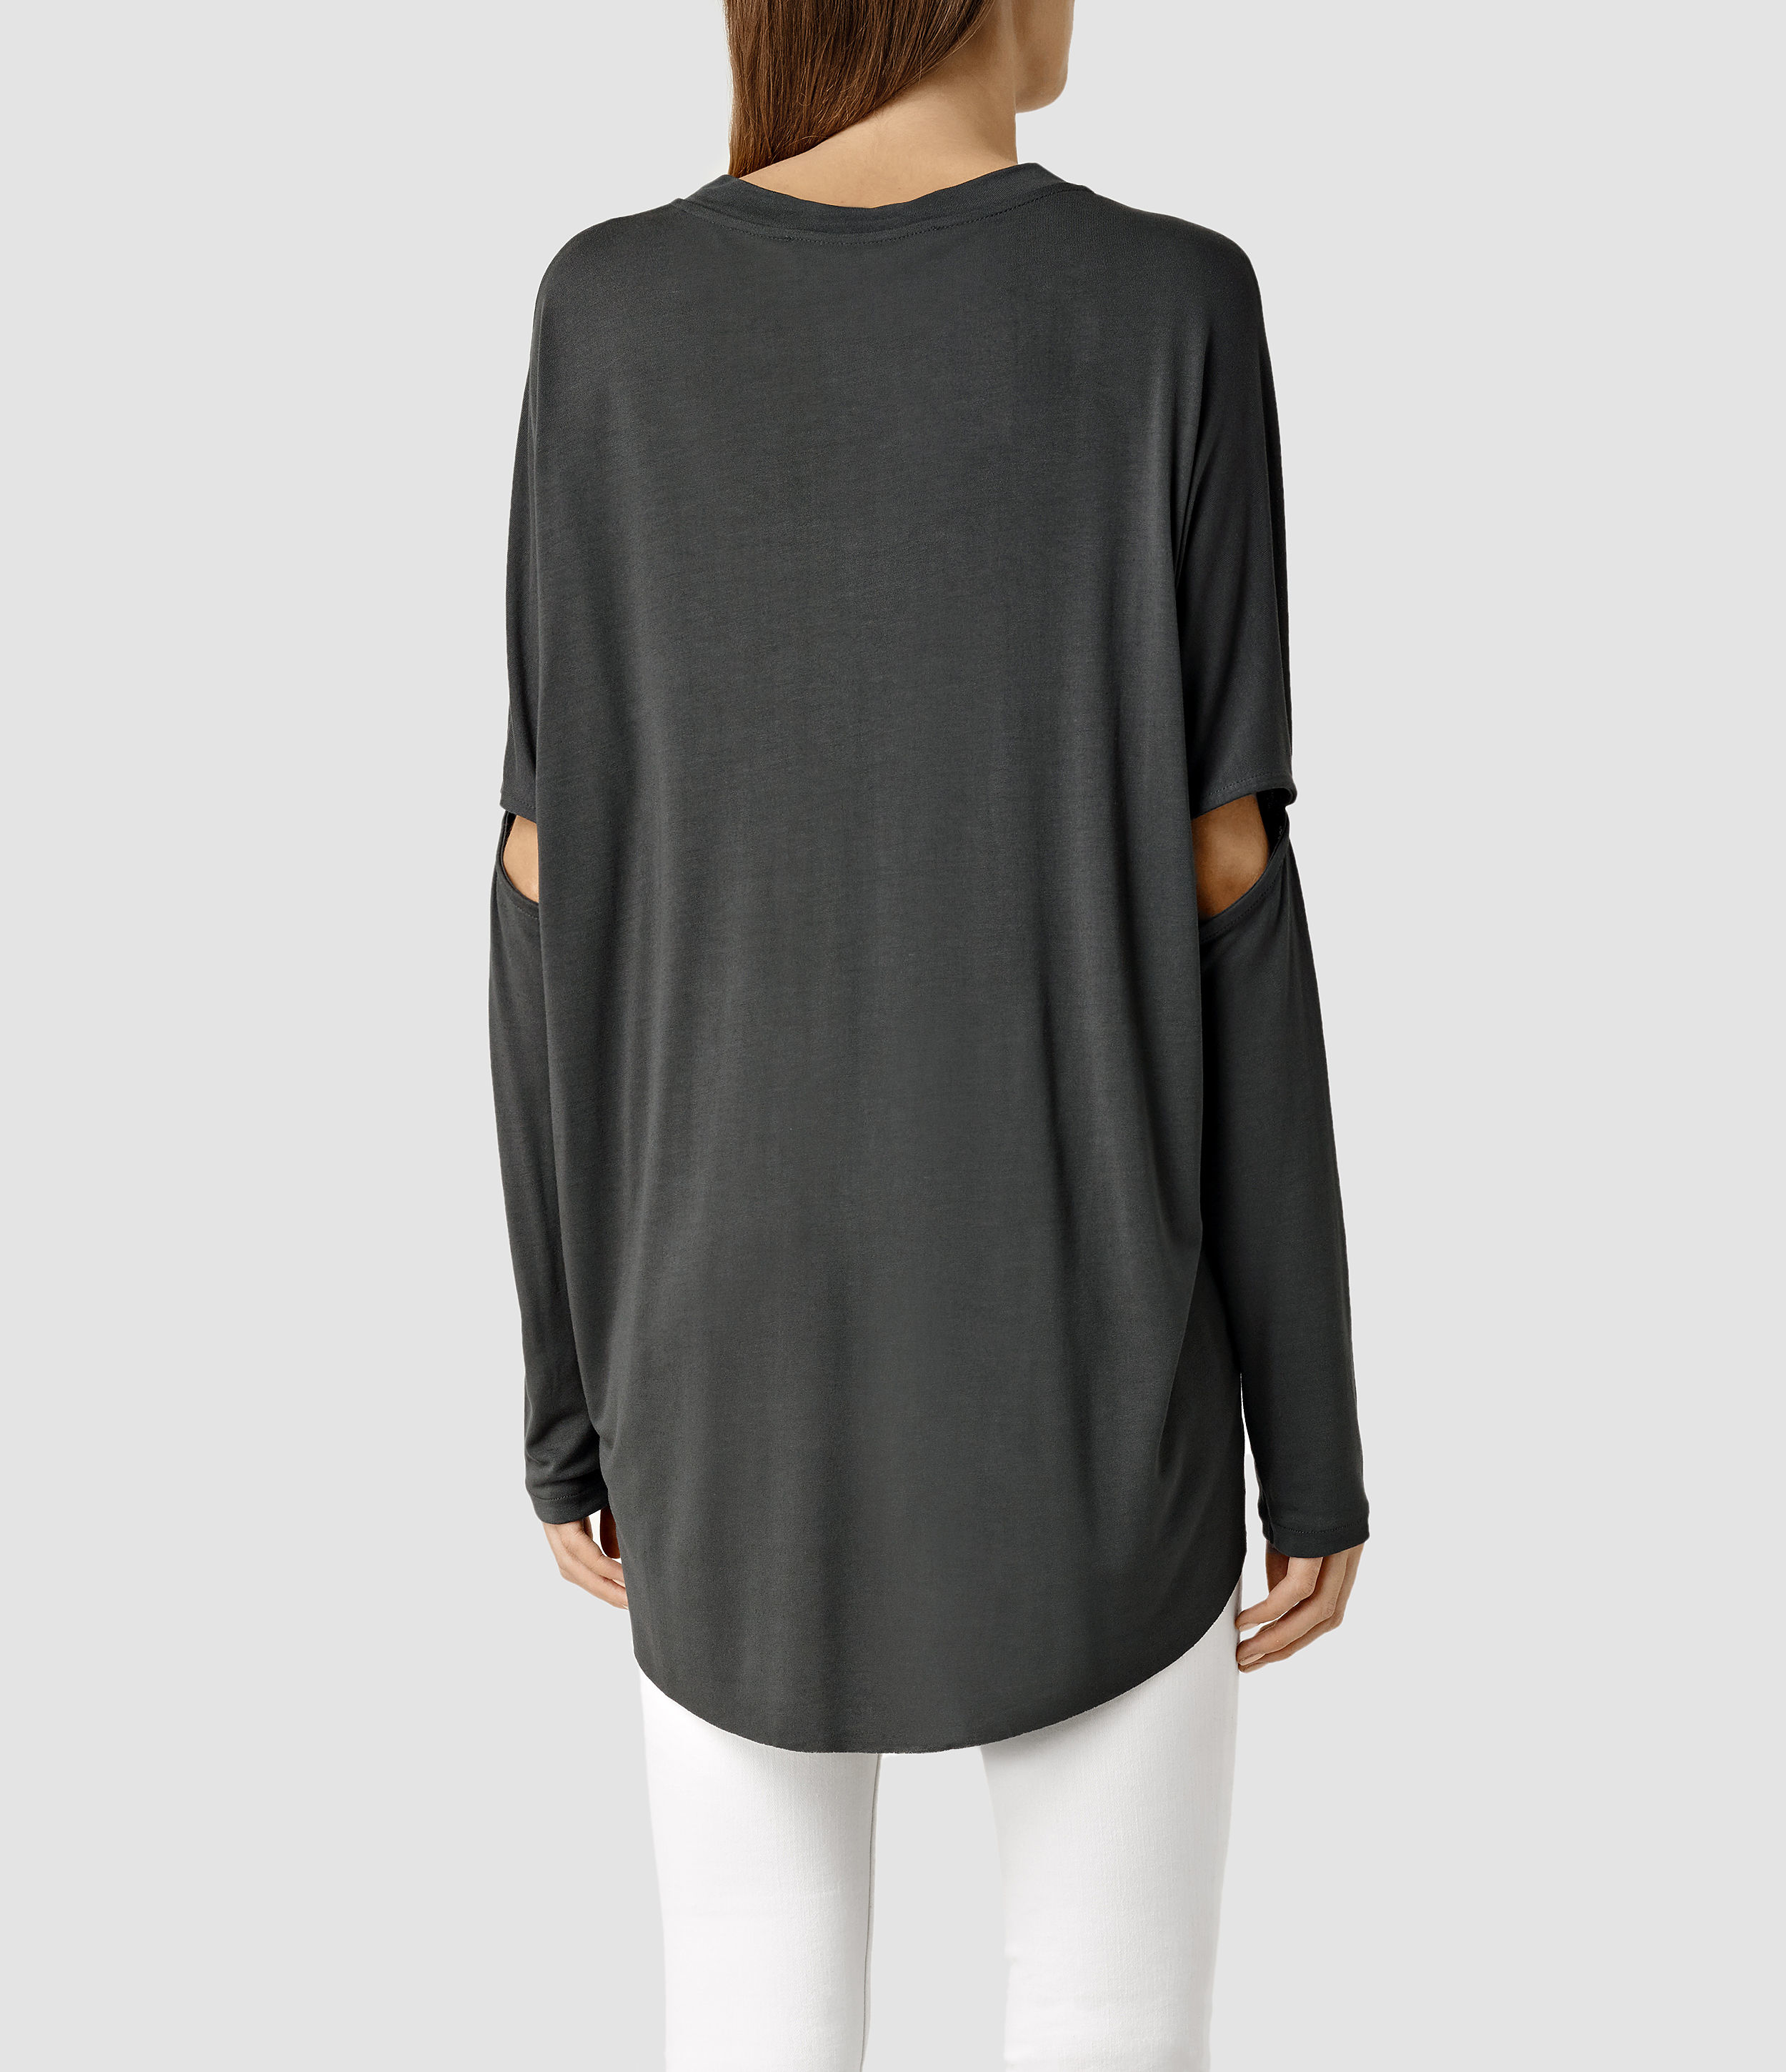 Allsaints Wave Top in Gray (Dark Charcoal)